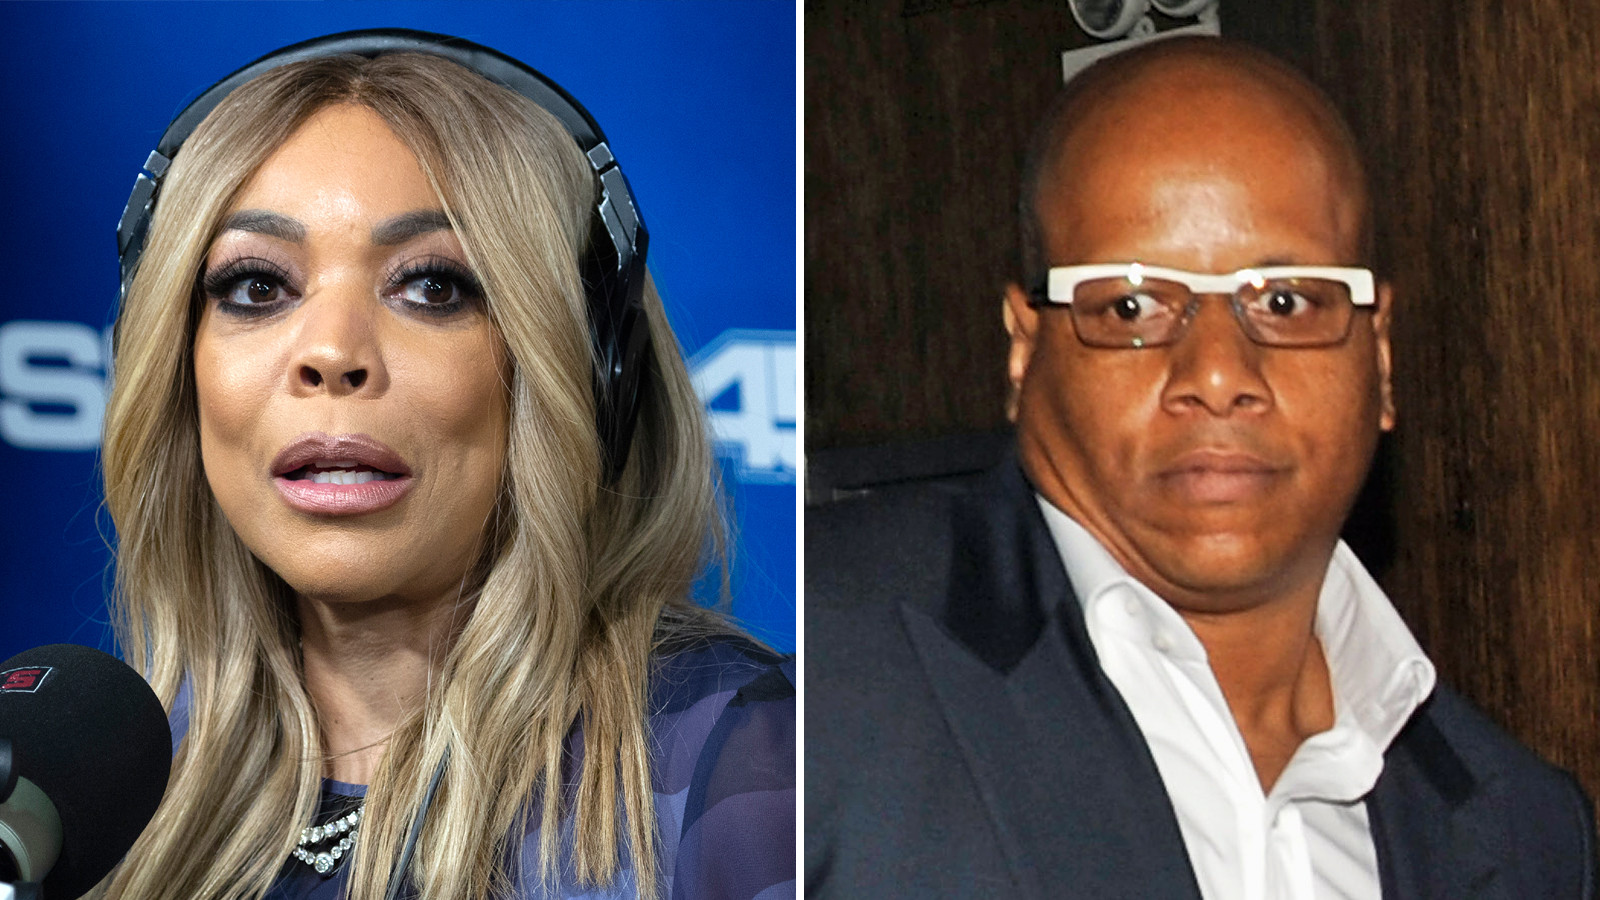 Wendy Williams Cries When Asked About Estranged Husband Kevin Hunter: 'Don't Ask'